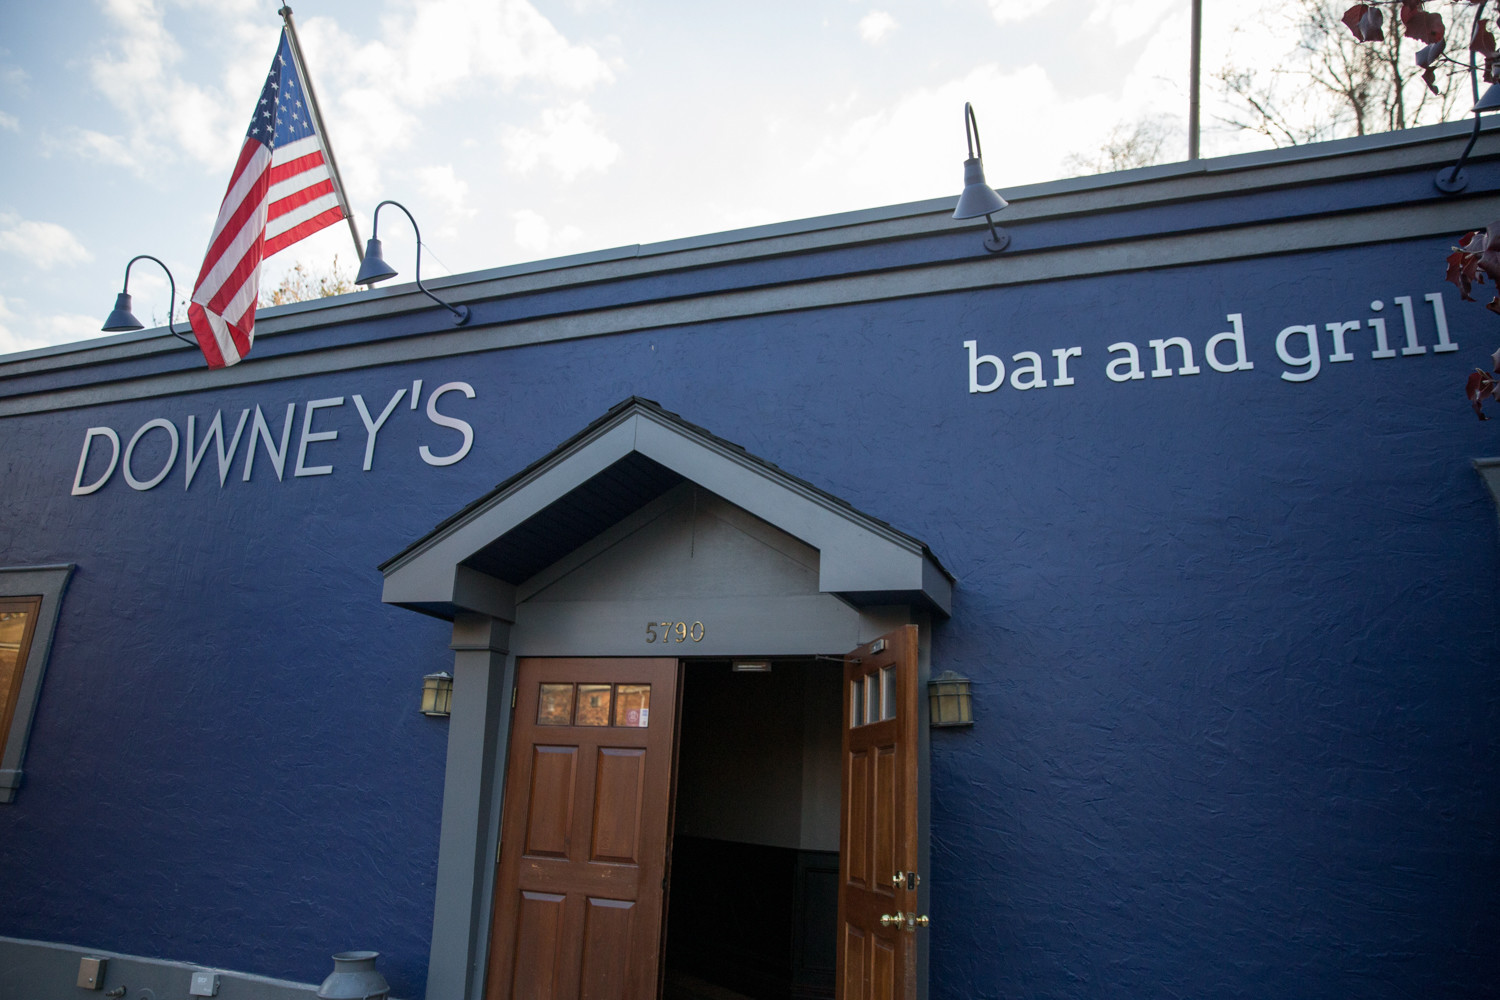 Downey s bar and grill keeps neighborhood feel on mosholu the riverdale press - Restaurant bar and grill ...